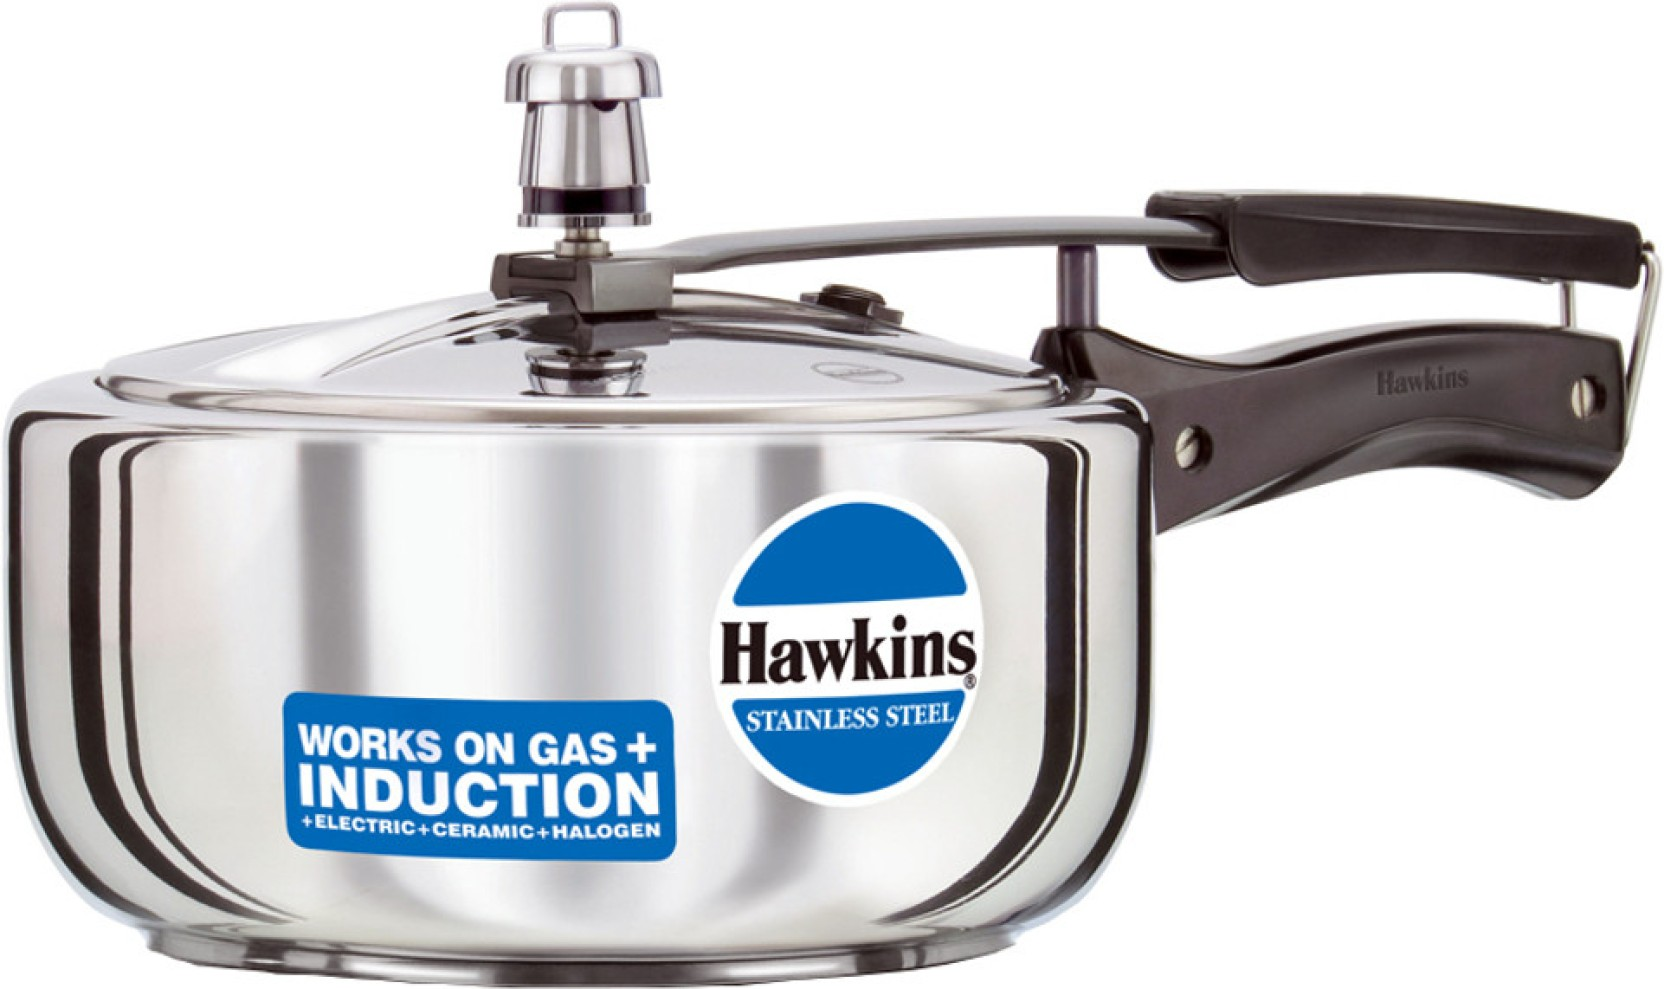 Hawkins Stainless Steel 3 L Pressure Cooker With Induction Bottom Buy Circuit Boardelectric Cookerinduction On Offer